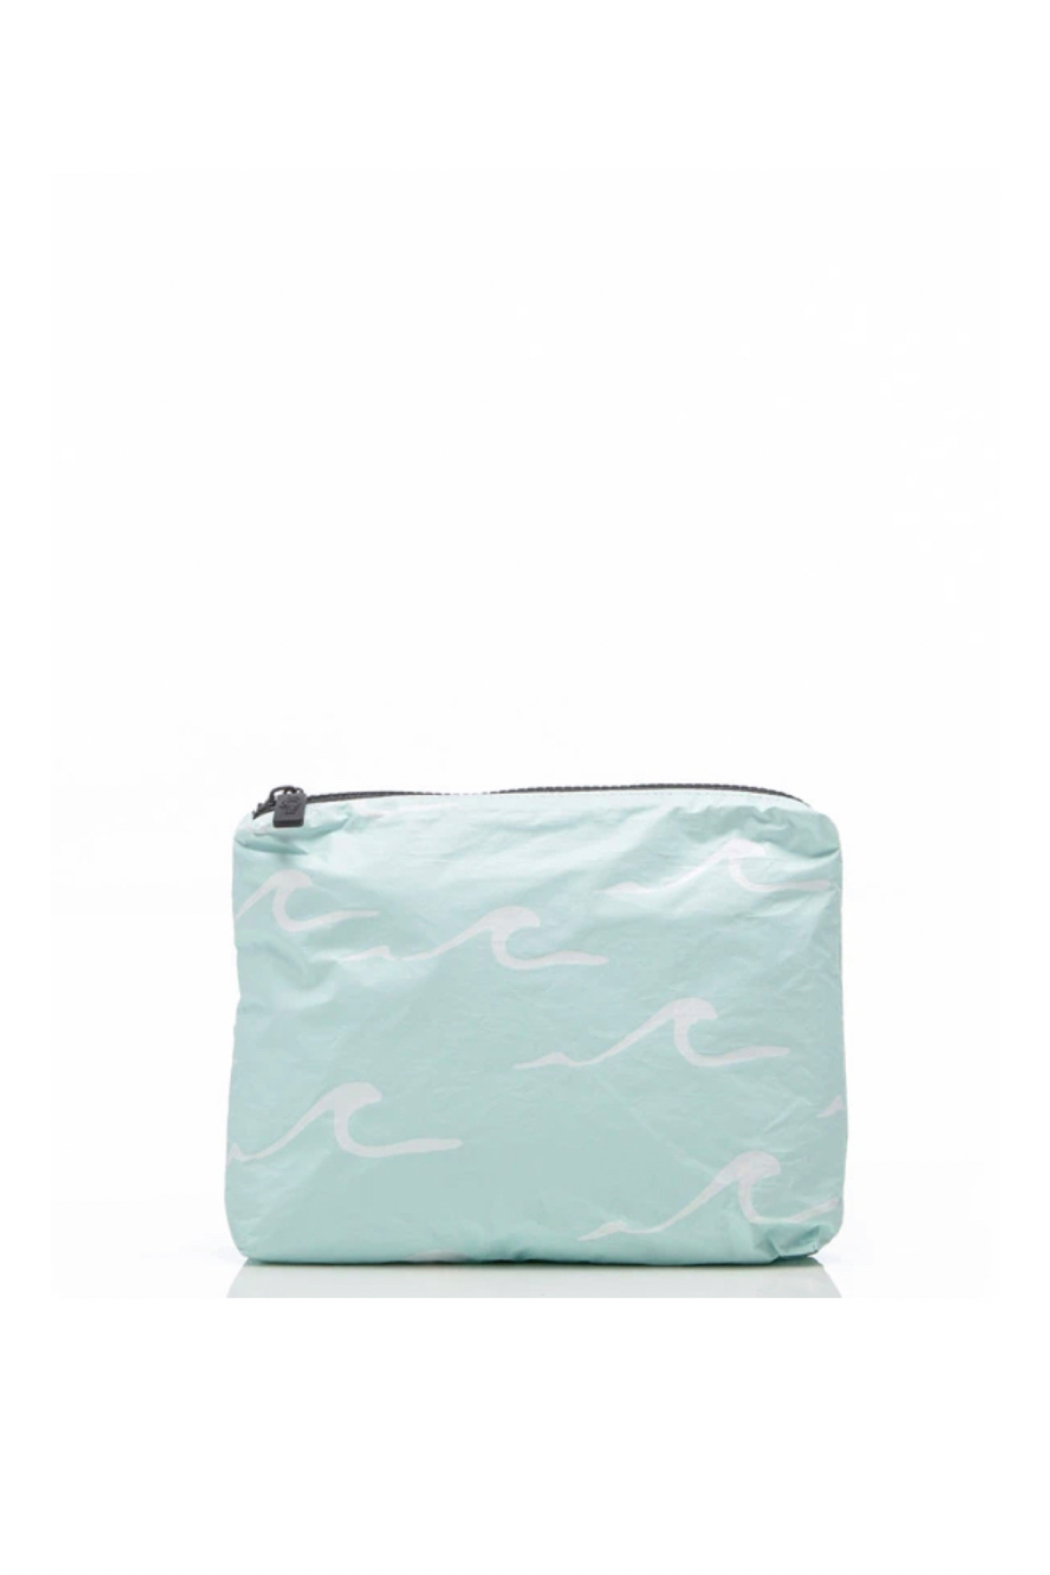 Aloha Collection Small Seaside Pouch in LeMU Blue - Main Image